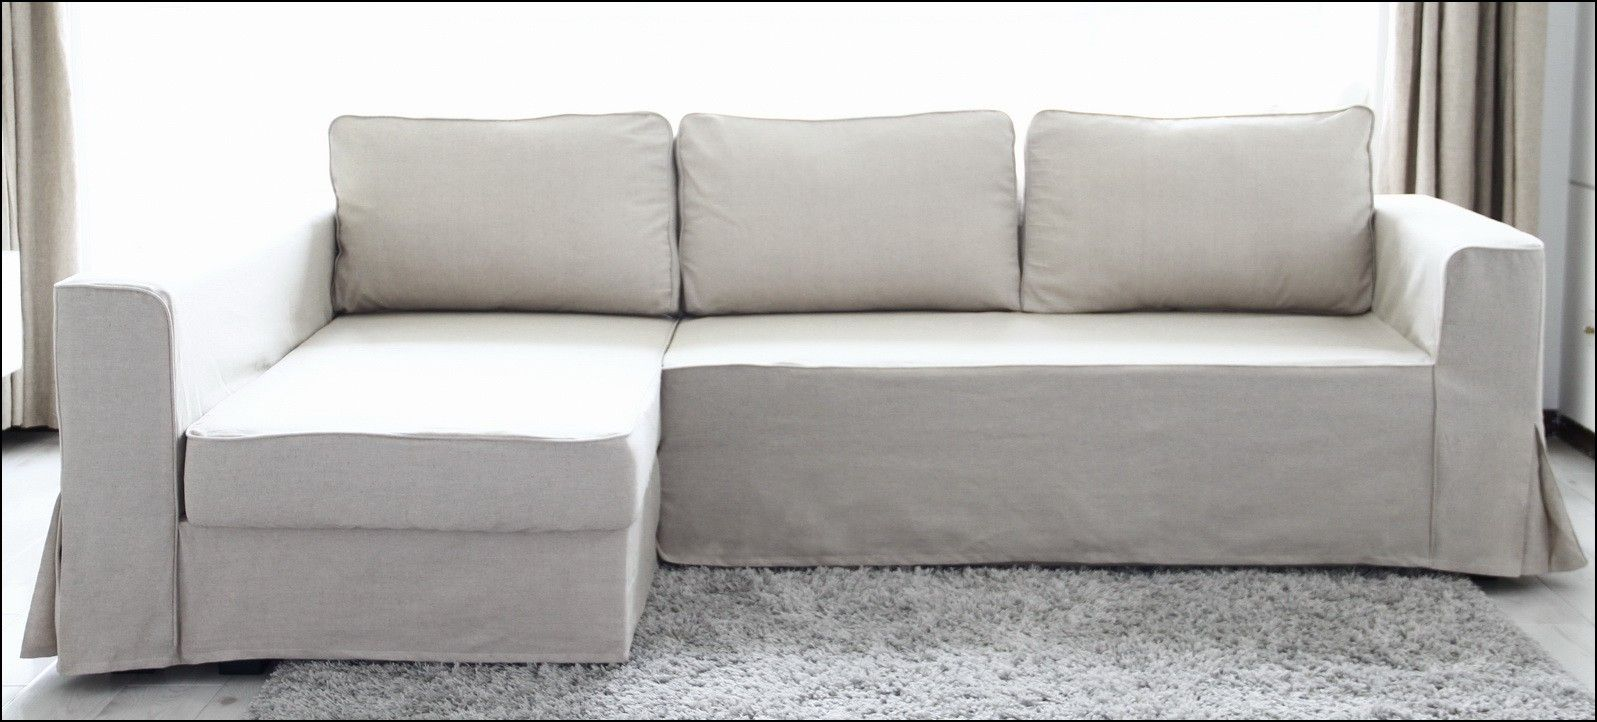 Ikea Sectional Couch Covers | Couch \u0026 Sofa Gallery | Pinterest ...